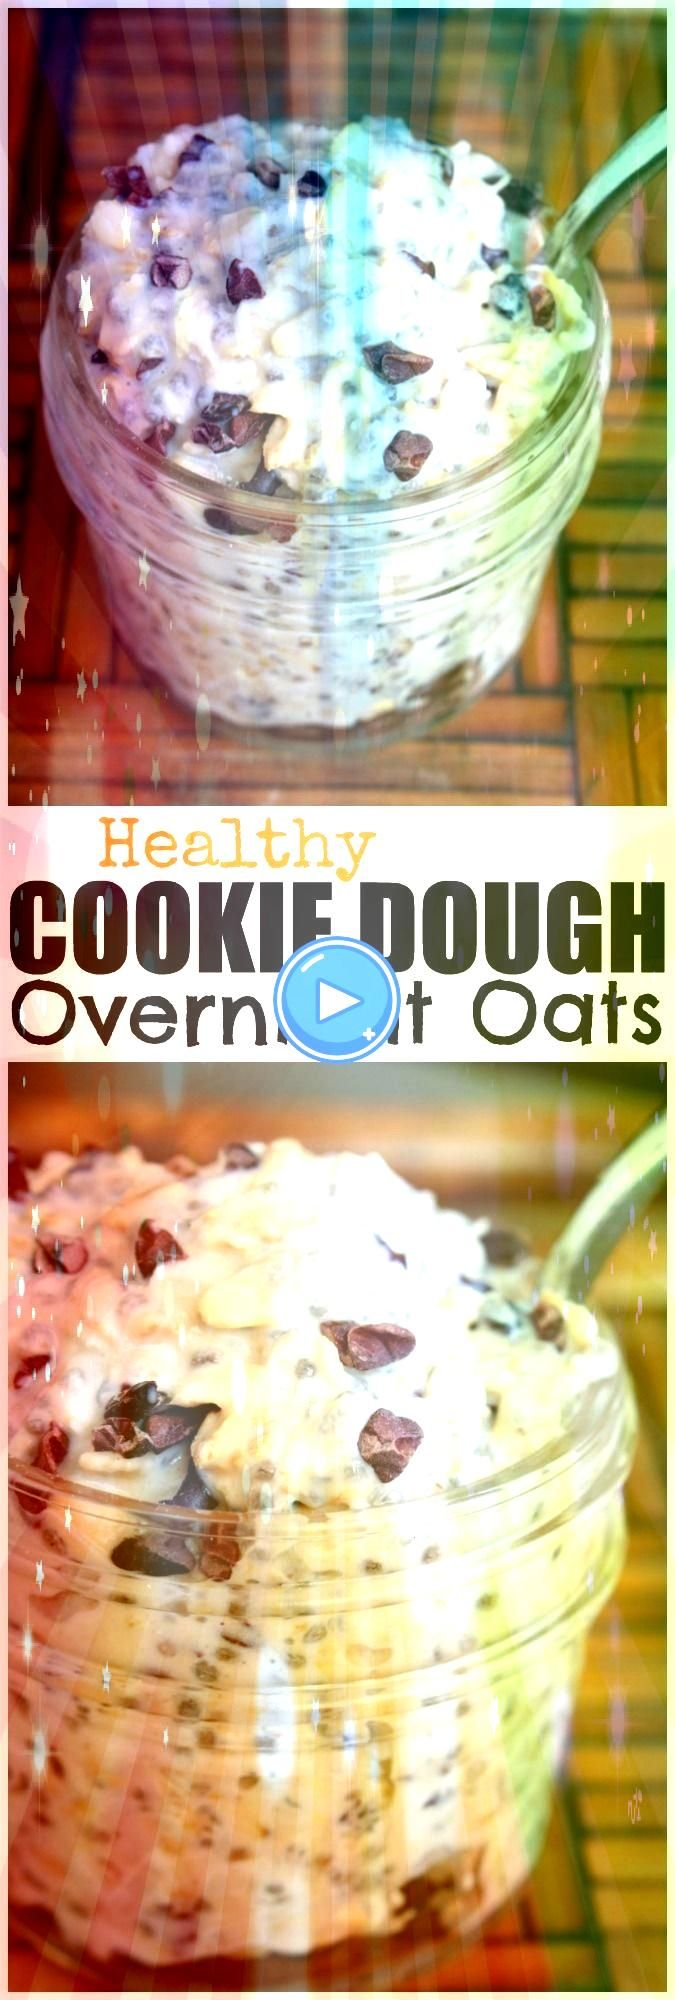 Cookie Dough Overnight Oats I have such a sweet tooth and rarely have s  EAT HEALTHY Cookie Dough Overnight Oats I have such a sweet tooth and rarely have s  EAT  Thick a...